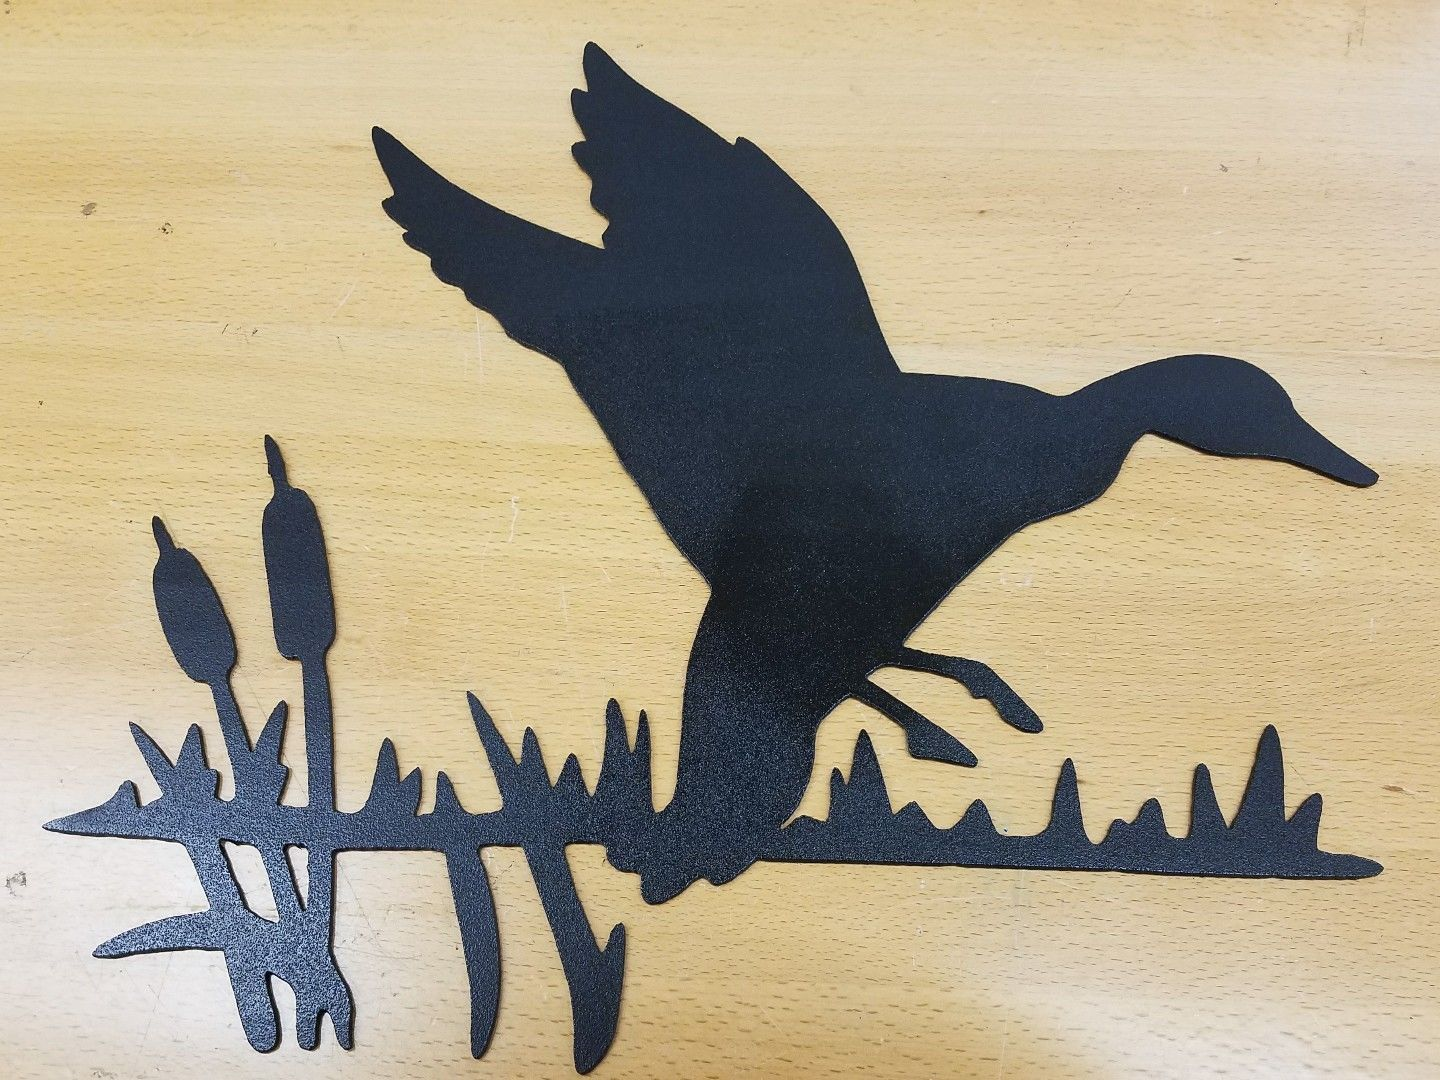 Duck in cat tails metal wall art plasma cut sign gift idea - Gas Pro ...